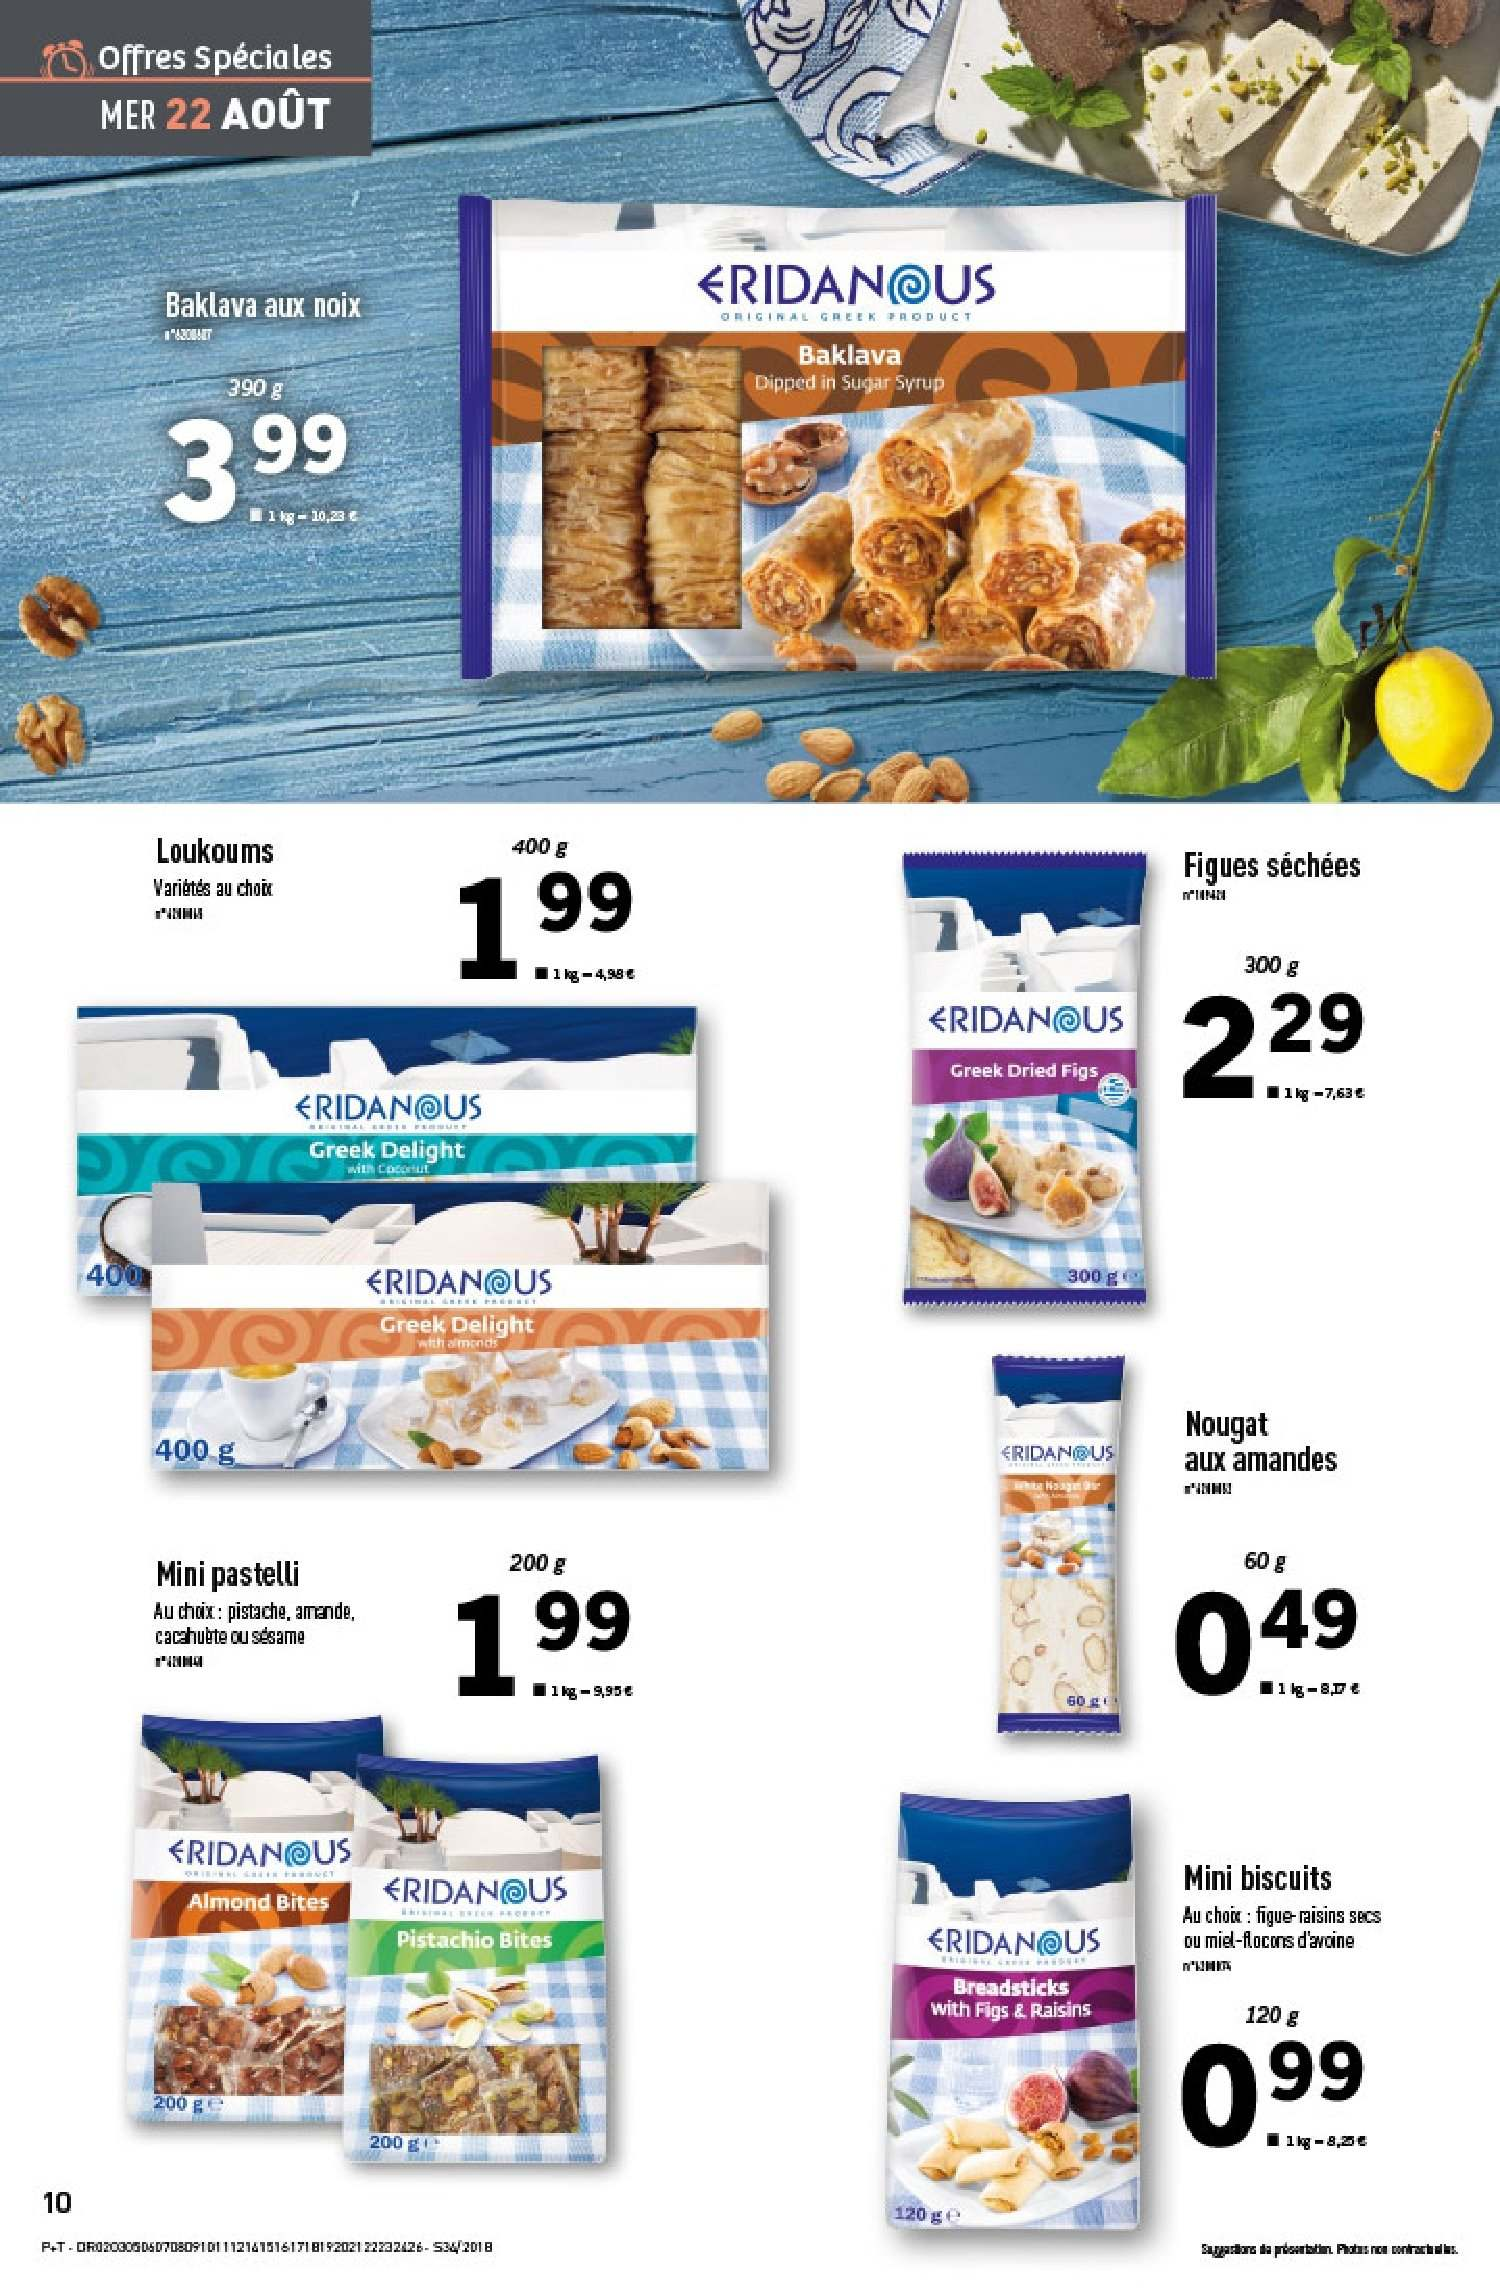 Catalogue Lidl - 22.08.2018 - 28.08.2018. Page 10.